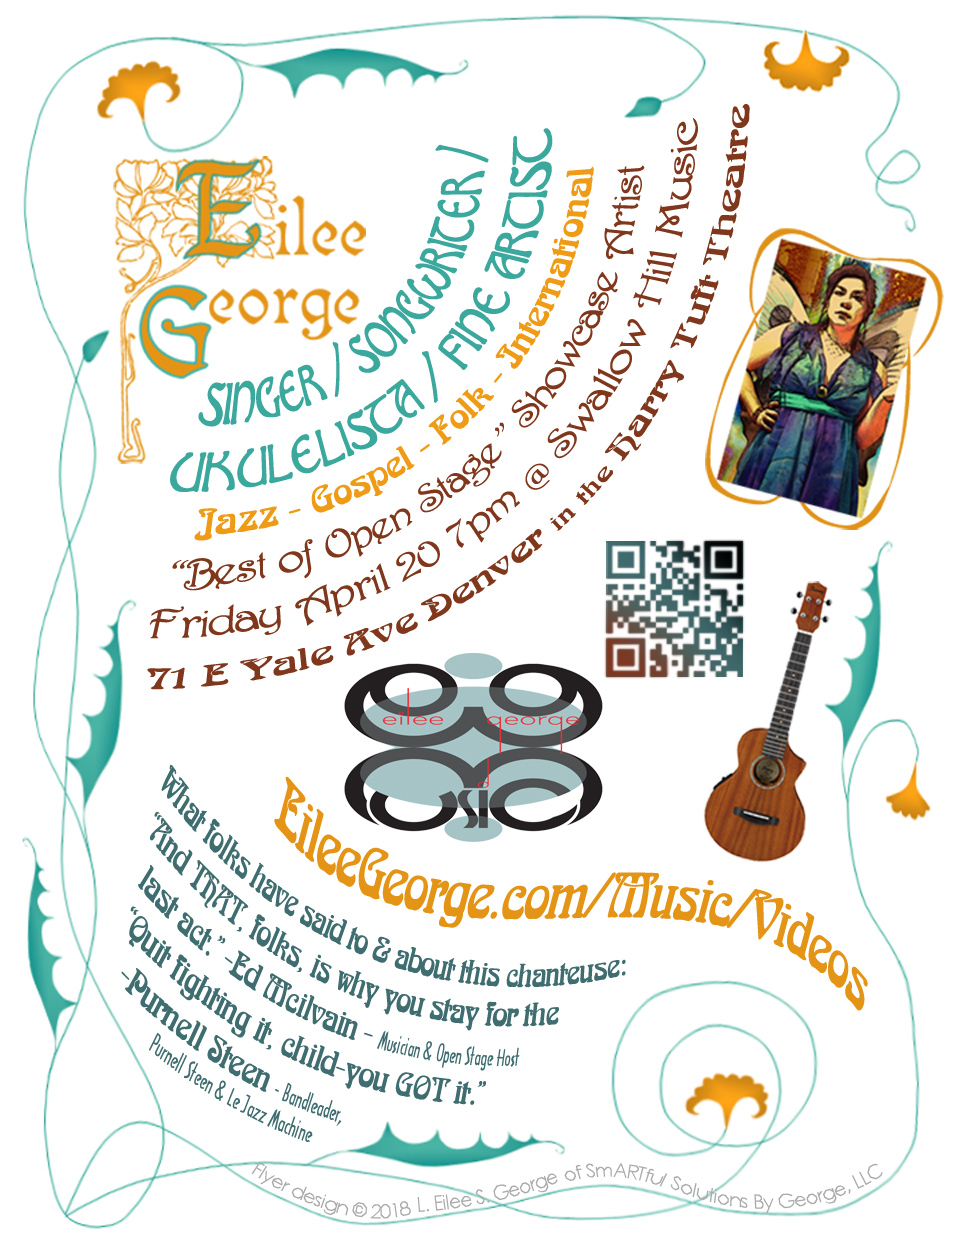 flyer for promoting showcase performance of Eilee George (with 4 other artists) at Best of Open Stage, Swallow Hill Music, April 20 2018, flyer design ©2018 L. Eilee S. George and Smartful Solutions By George, LLC